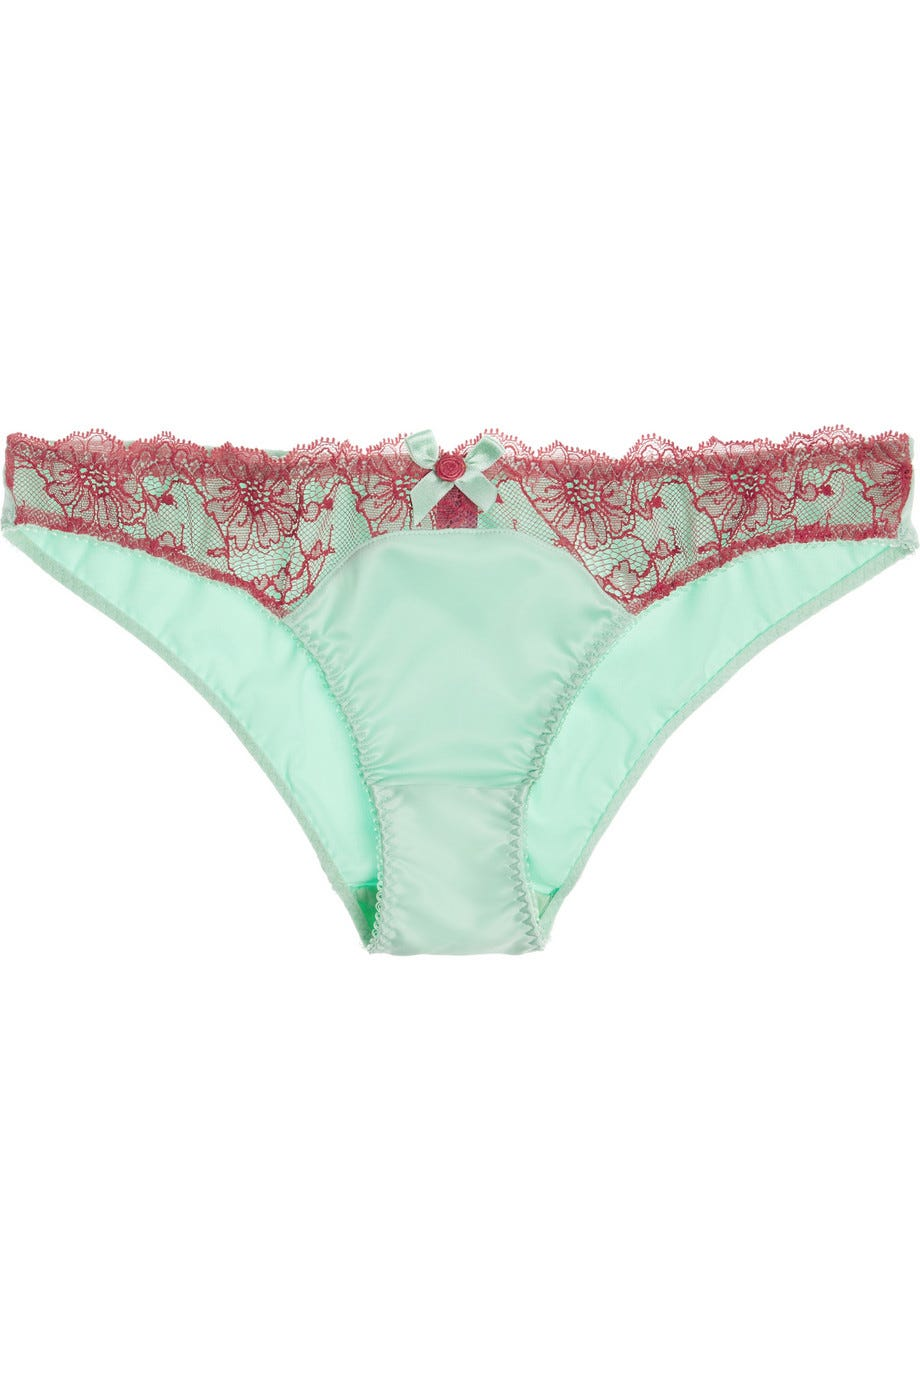 295a568c8b53 Sexy Lingerie Sets - Bras And Underwear, Thongs, Bralet